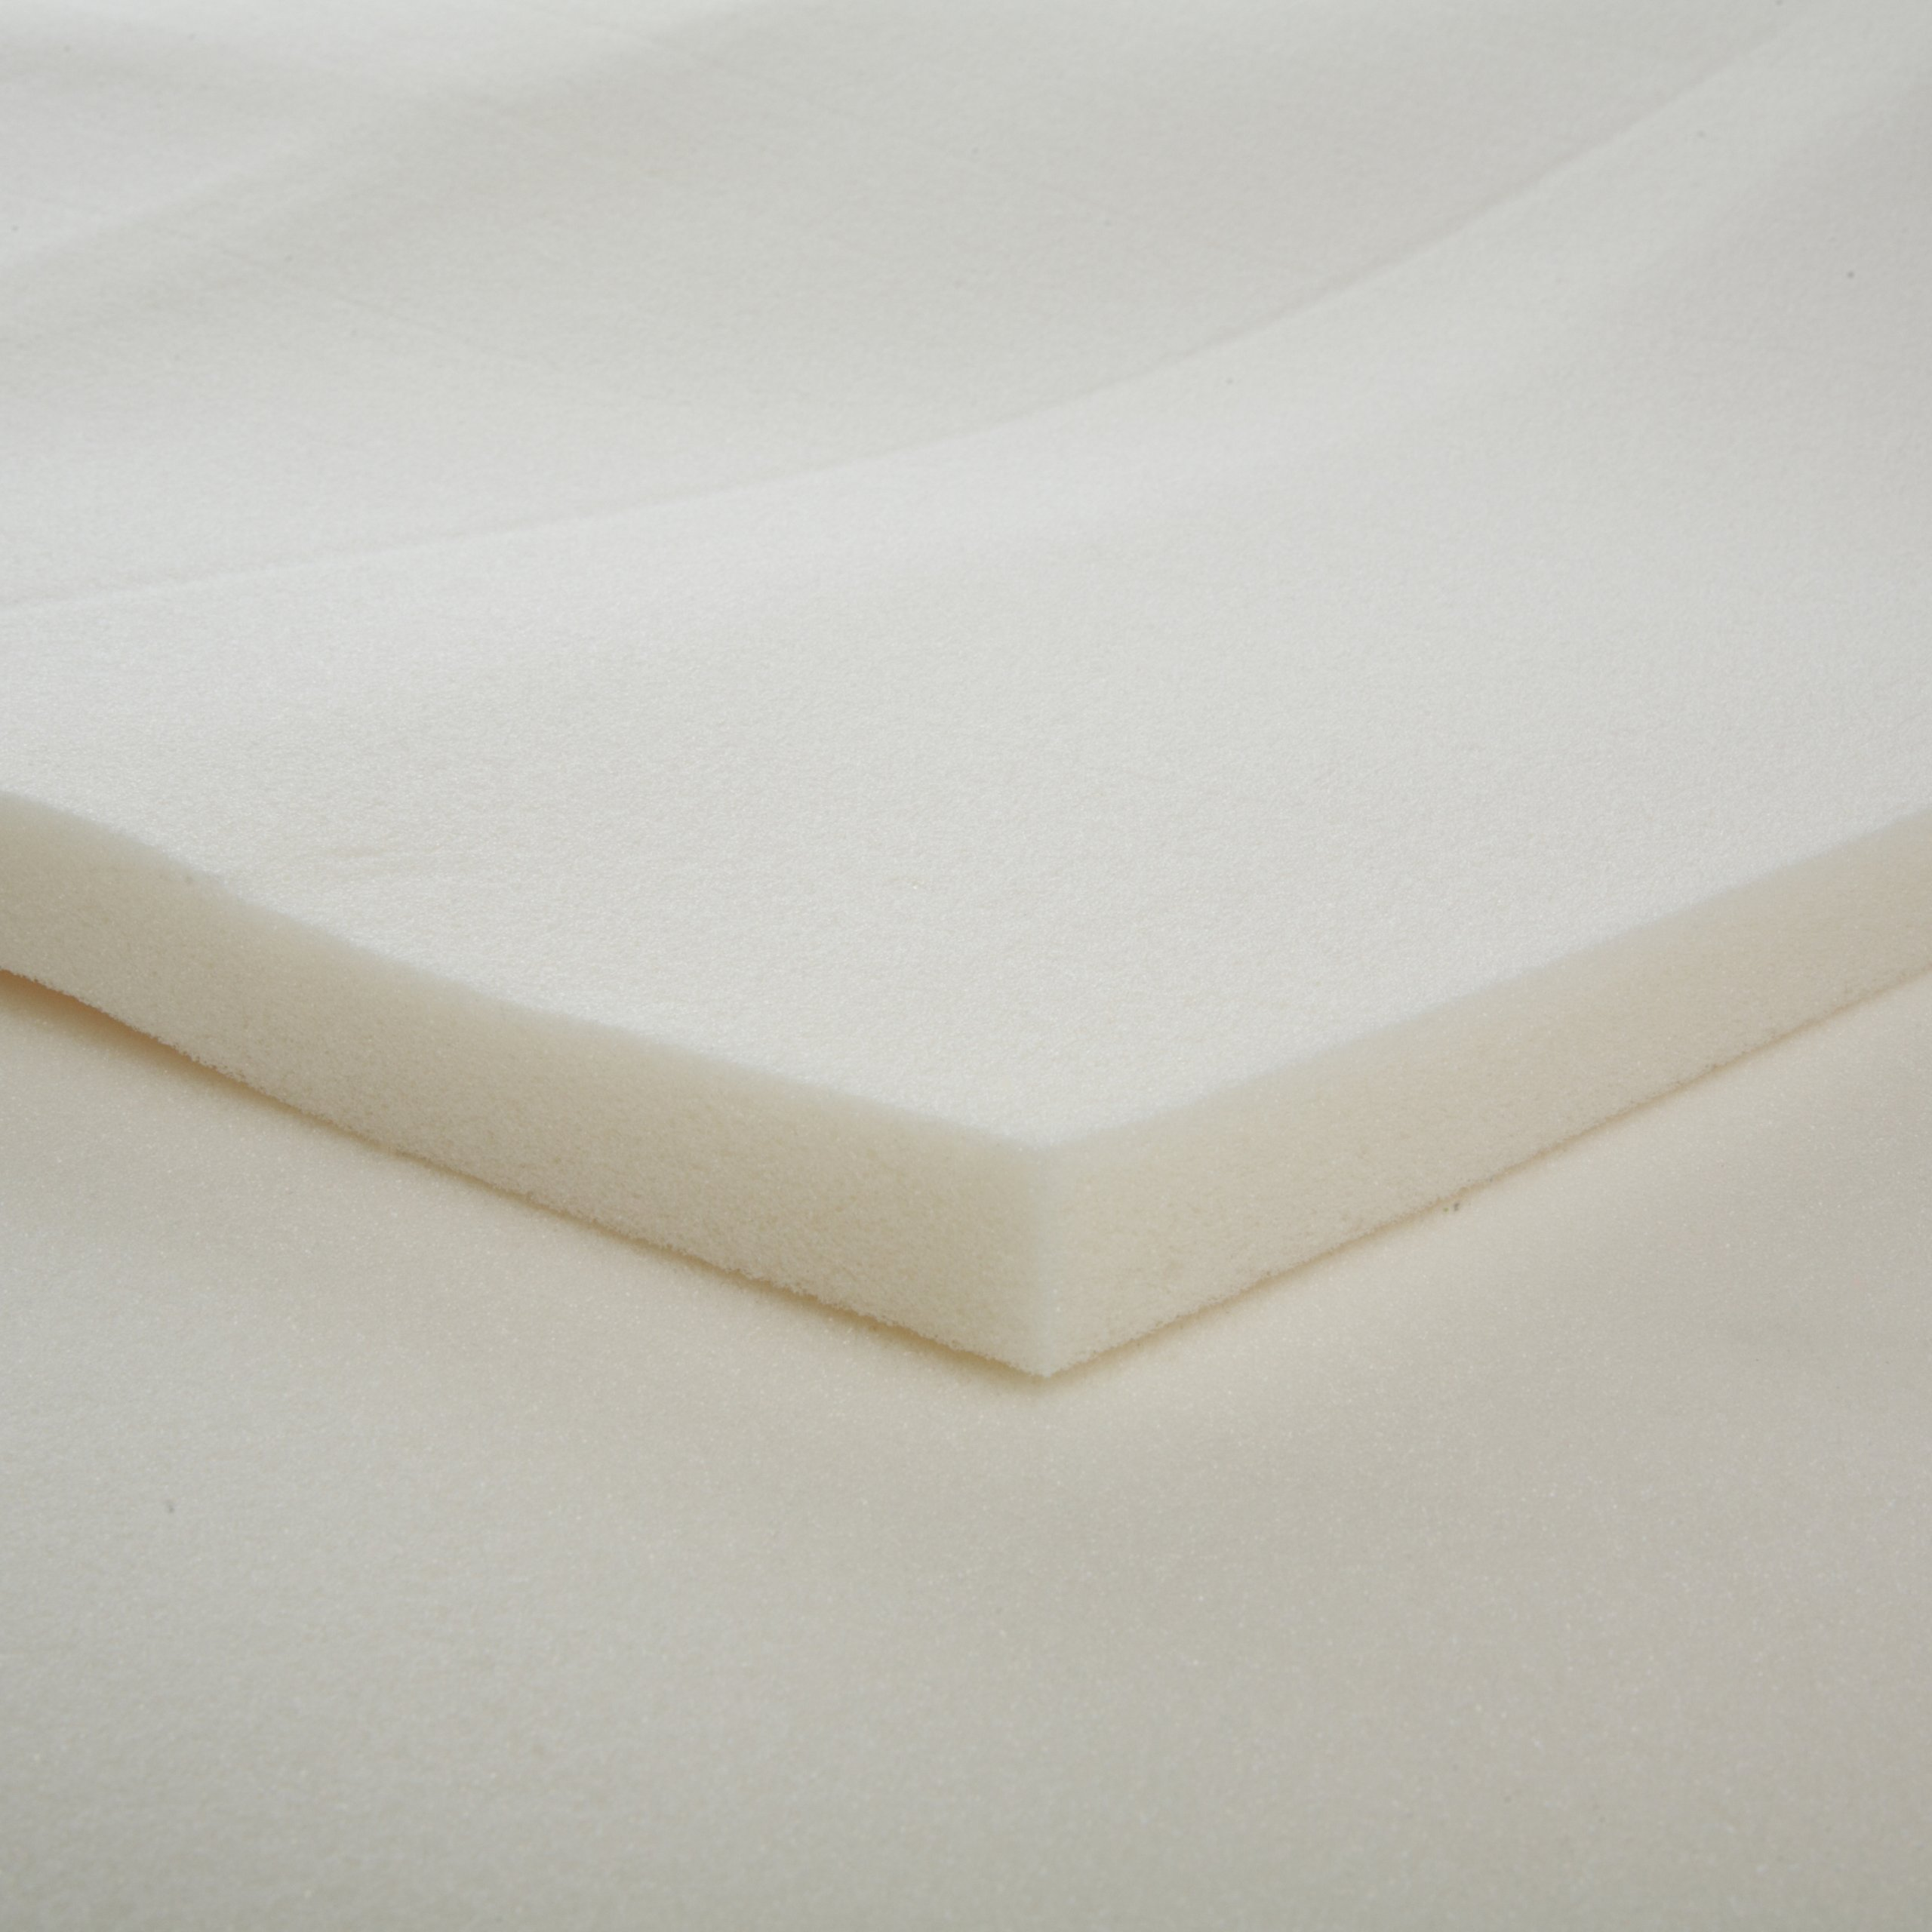 1 Inch Slab Memory Foam Mattress Topper Queen Ebay